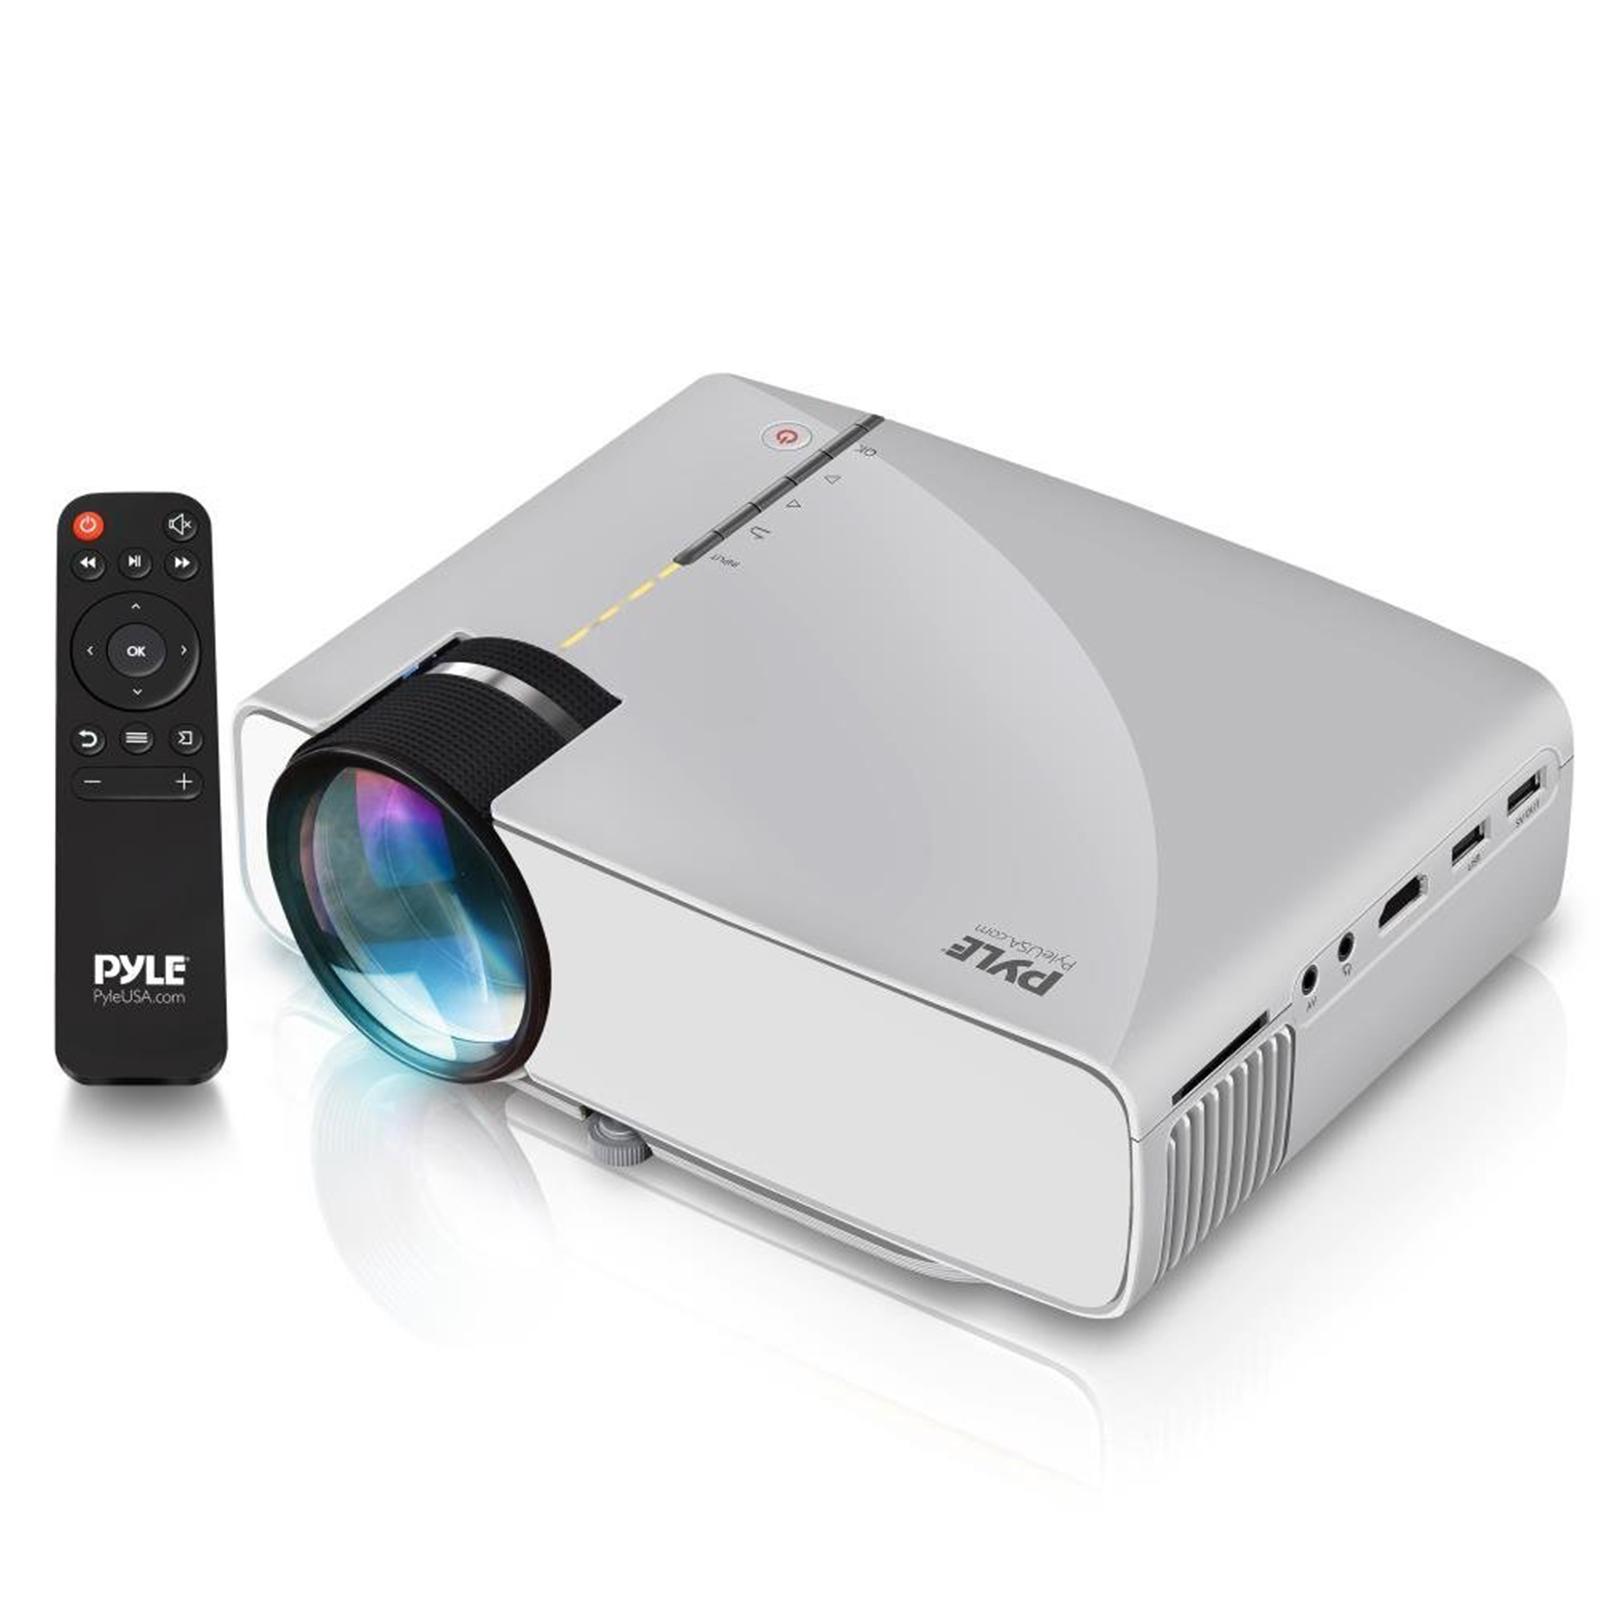 "Pyle Portable Multimedia Home Theater Projector Compact HD 1080p High Lumen LED USB HDMI Adjustable 50""... by Pyle"